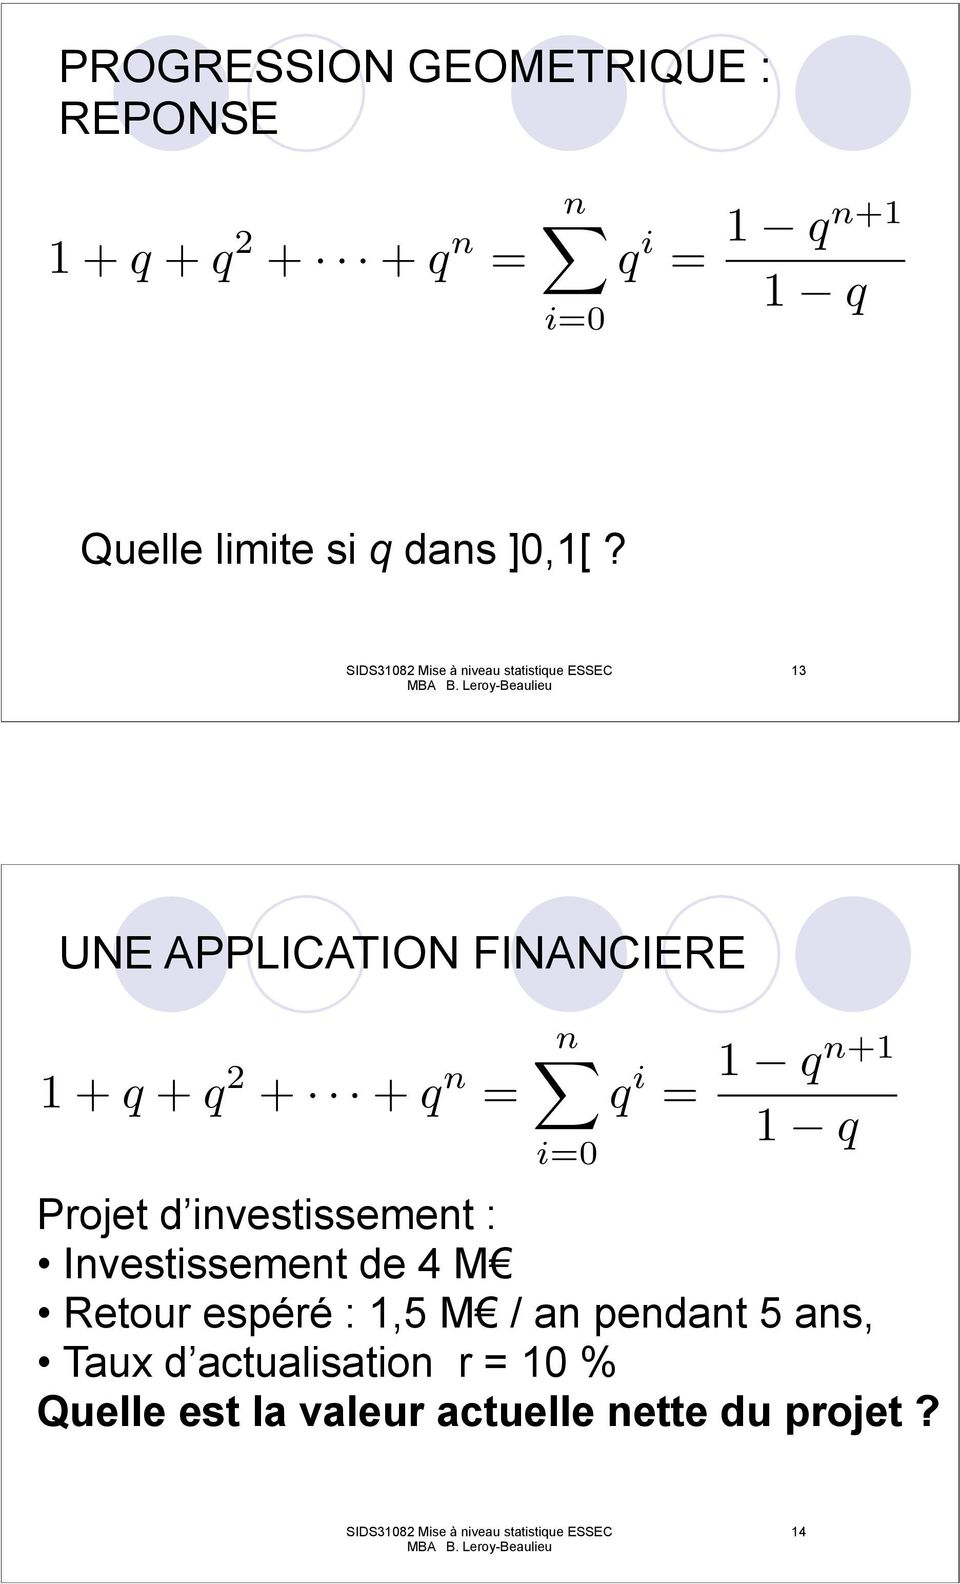 13 UNE APPLICATION FINANCIERE 1+q + q 2 + + q n = i=0 q i = 1 qn+1 1 q Projet d